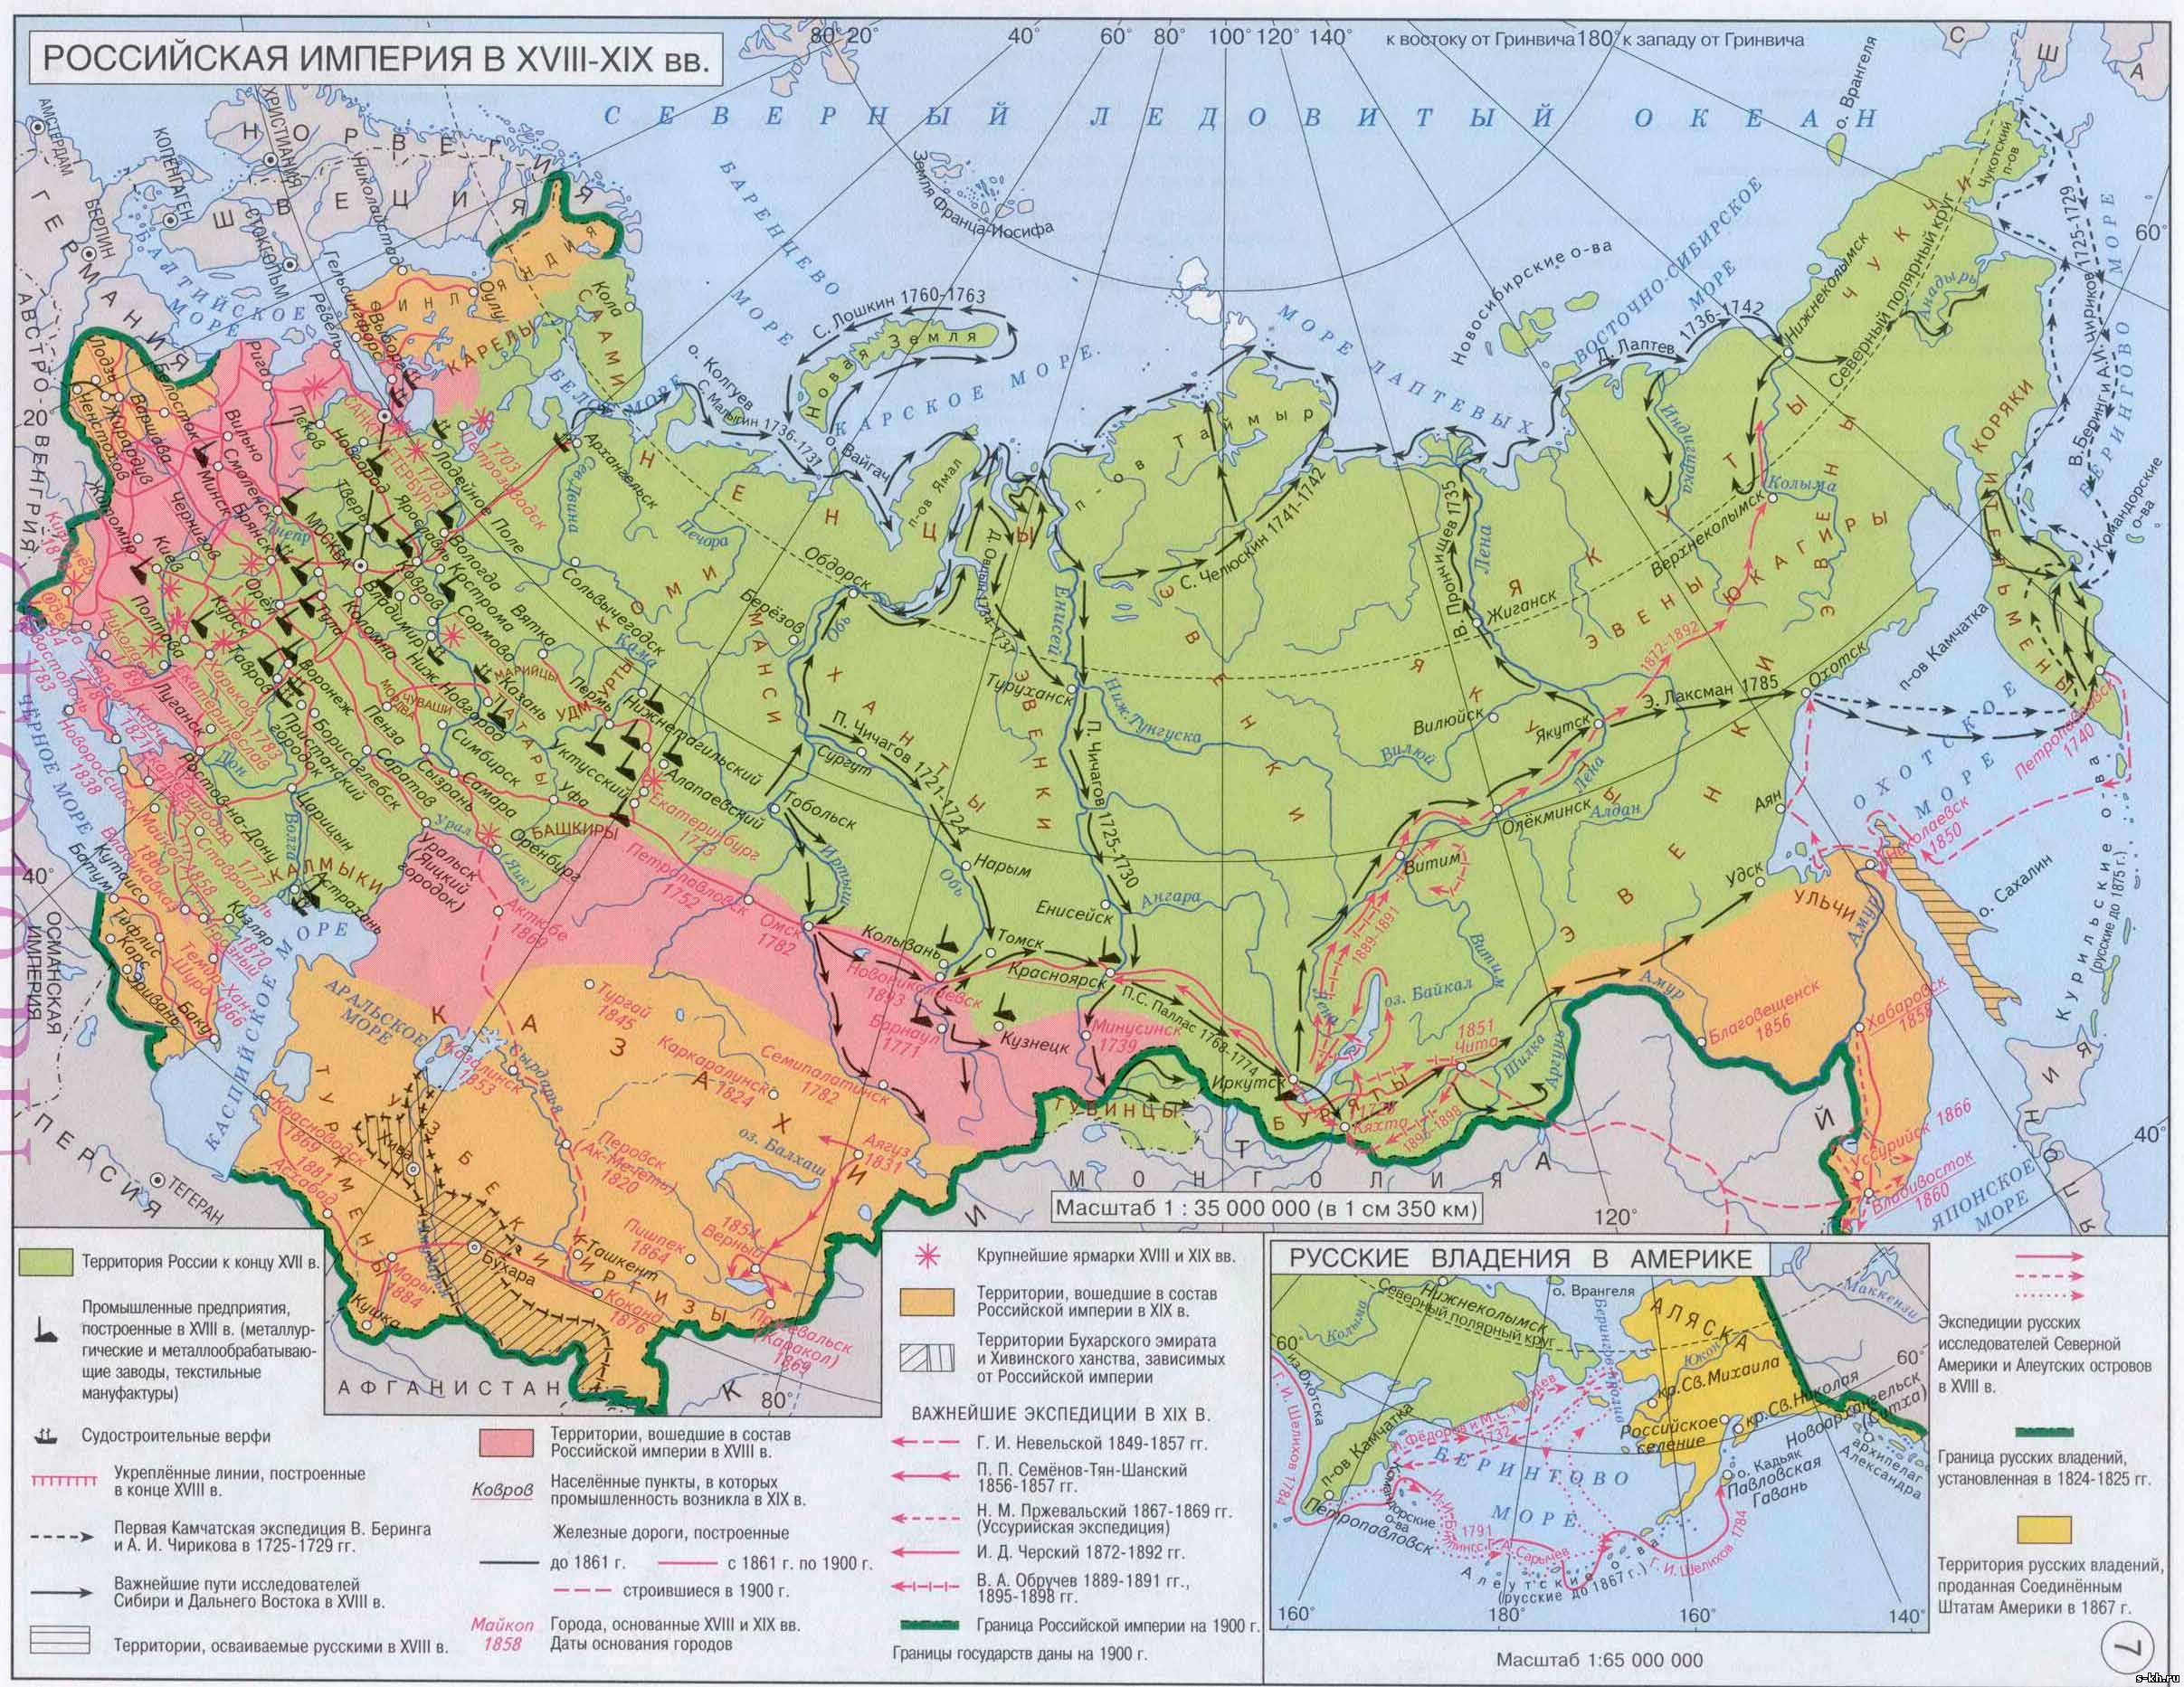 "On the western borders, it is clear that after the Second World War, the USSR did not return even 30% of the lands treacherously transferred by the communists under the Treaty of the Bretta Peace. And what was left after the communists divided the Russian lands into ""commune-principalities""."